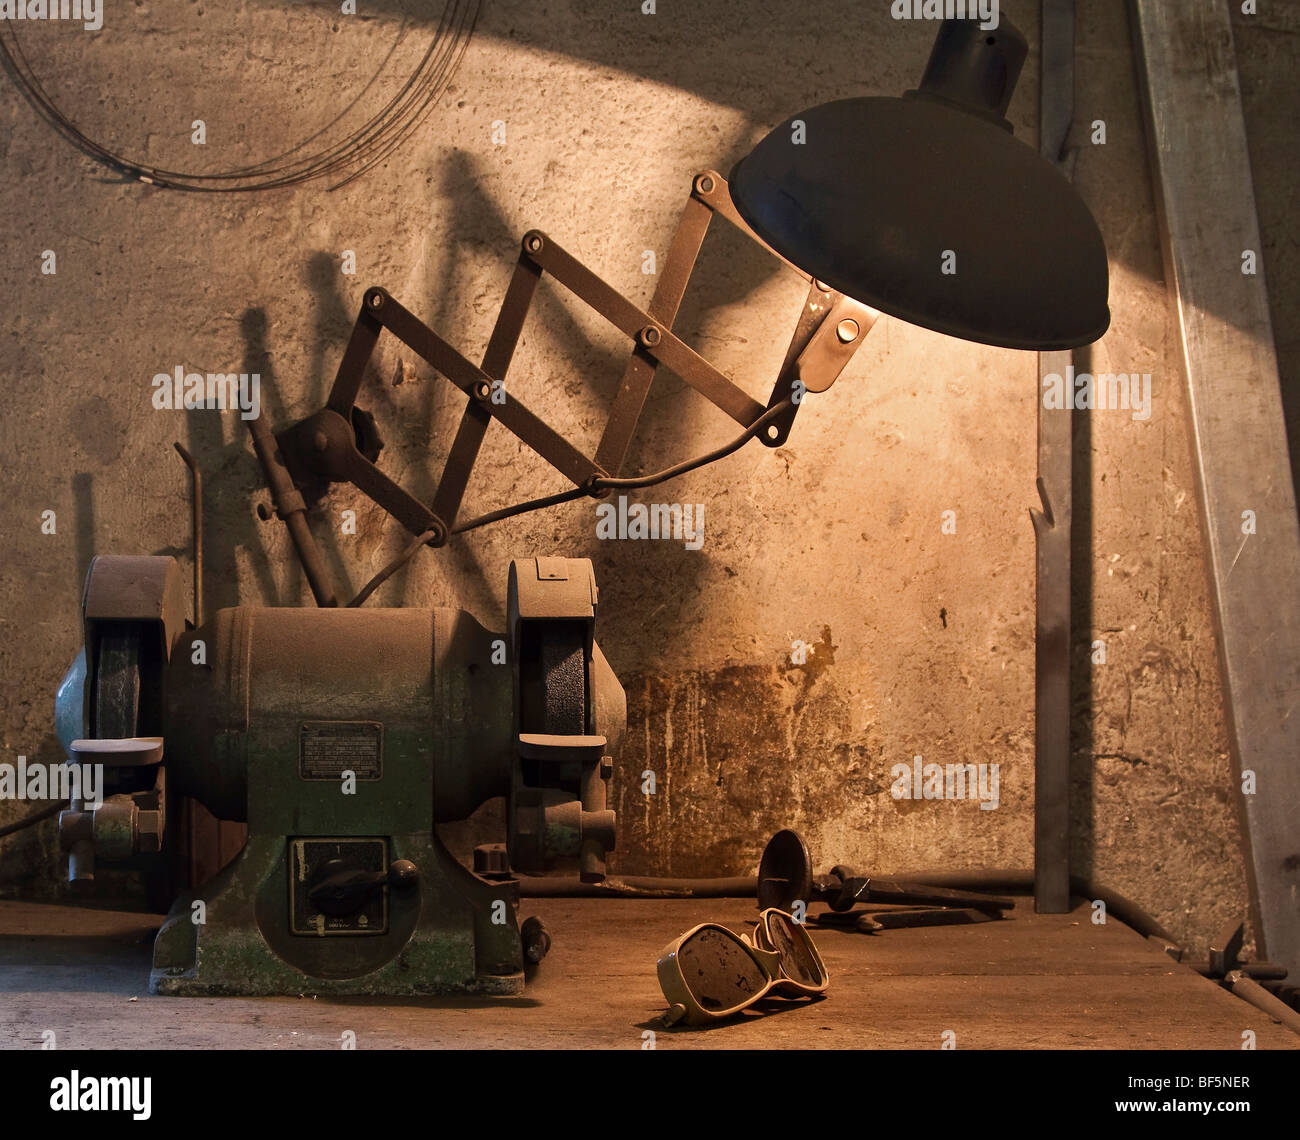 Work bench in a Forge, Berlin, Germany Stock Photo